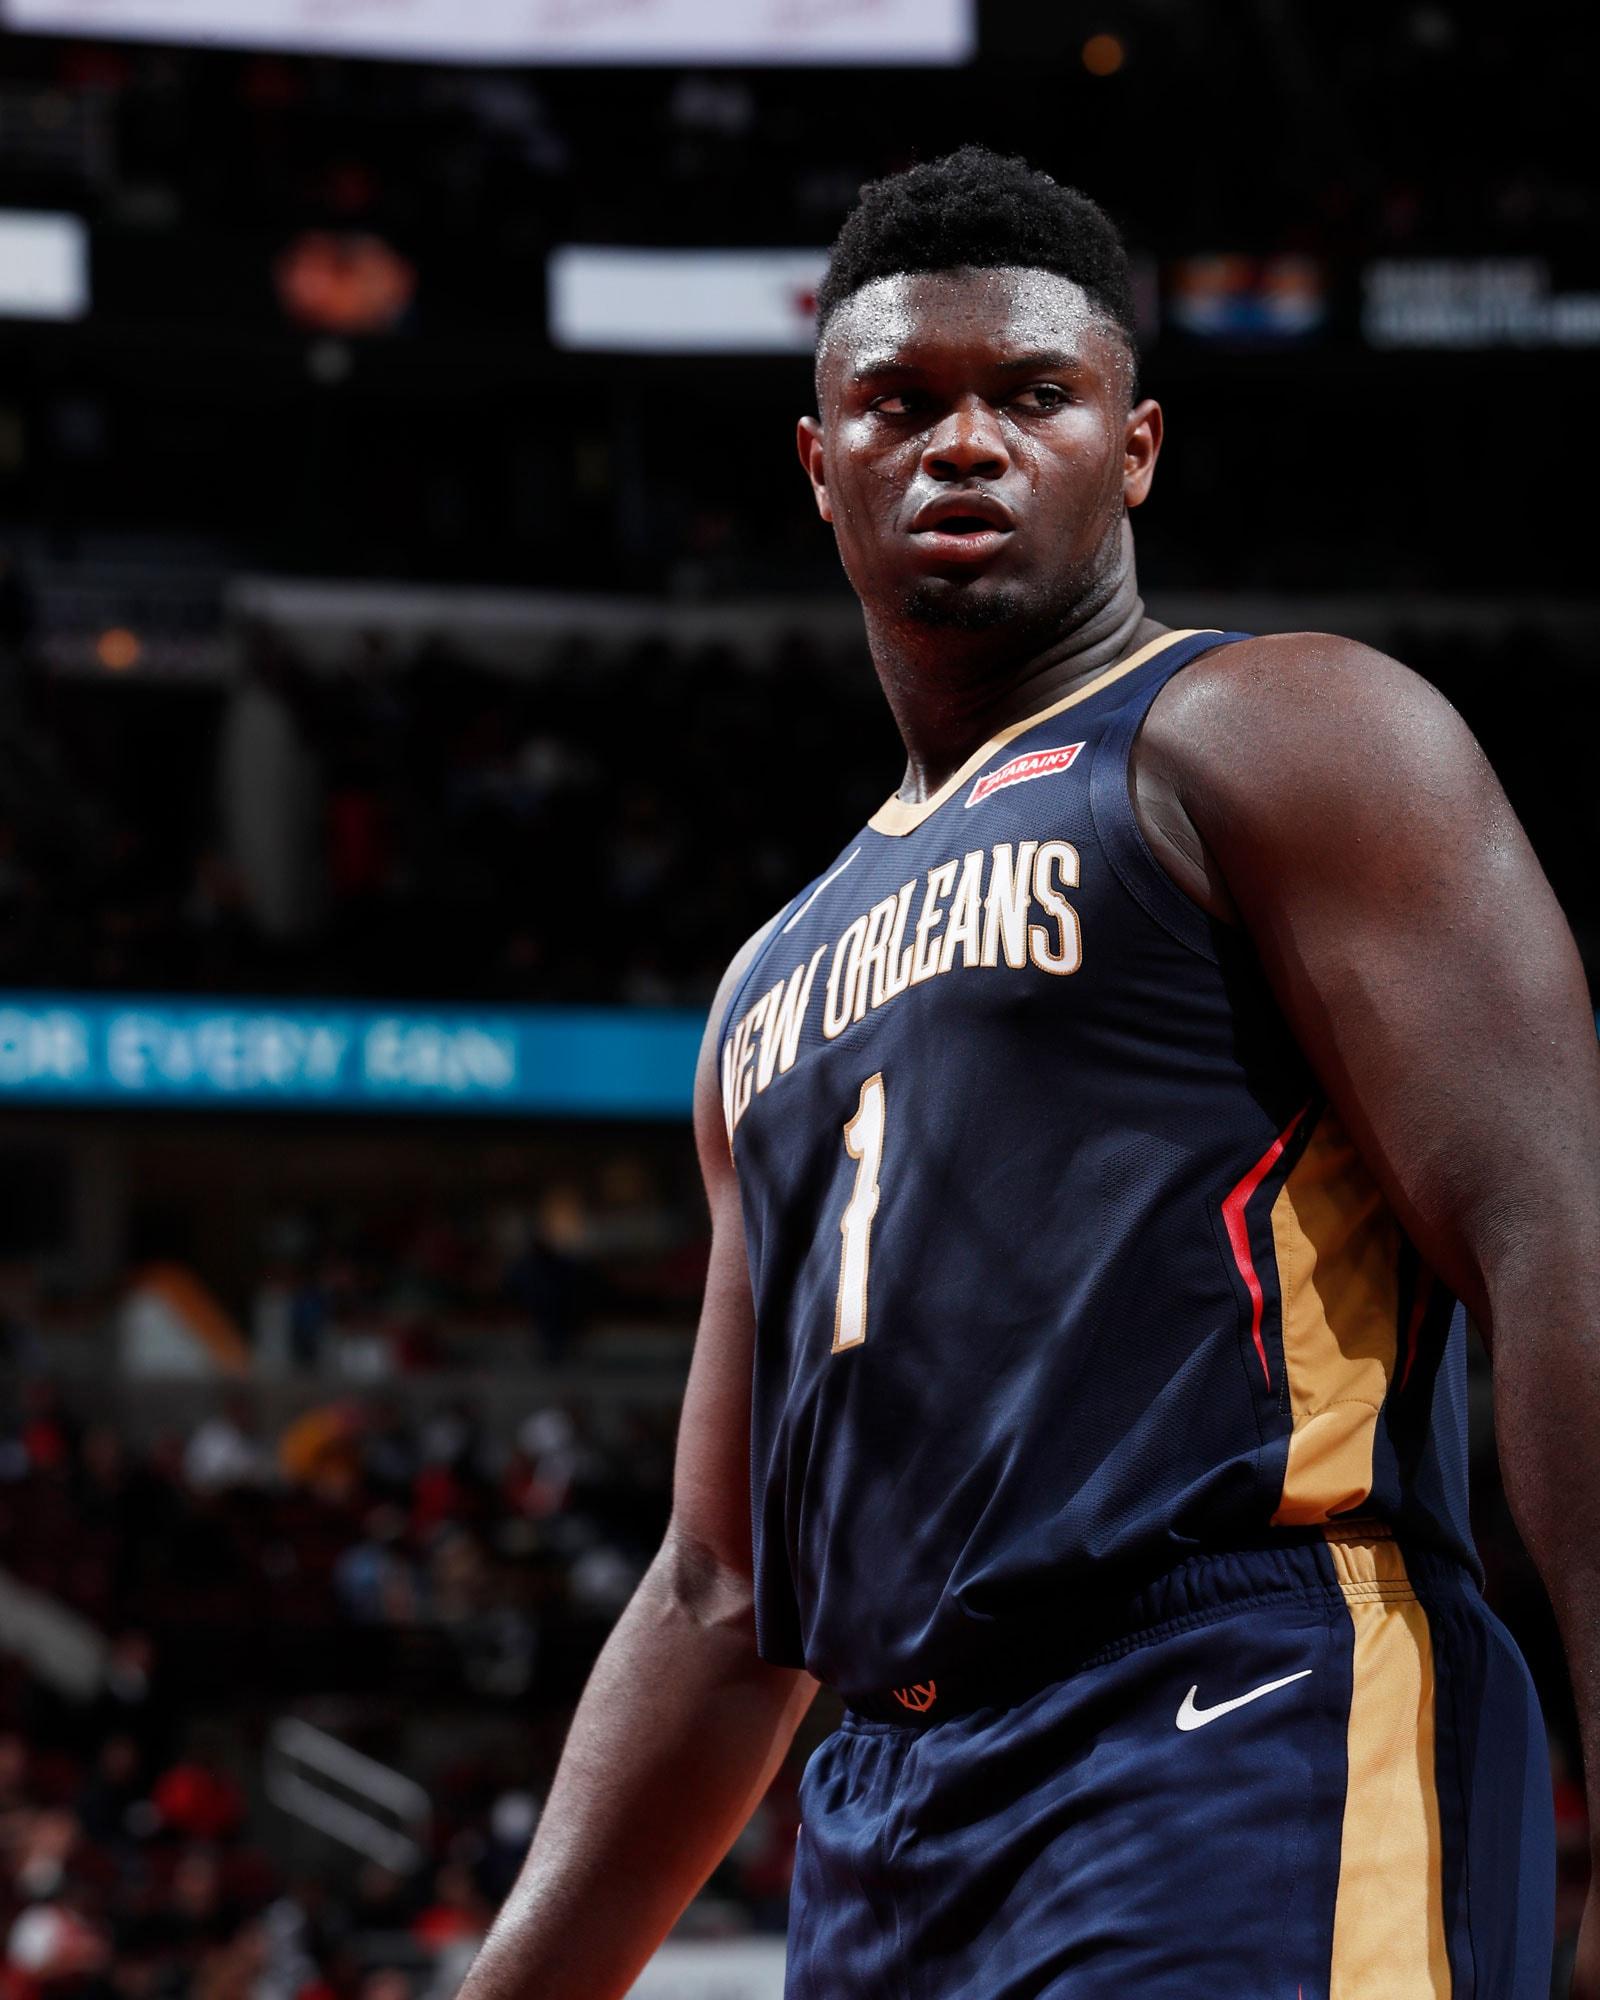 Zion Williamson #1 of the New Orleans Pelicans looks on during a pre-season game against the Chicago Bulls on October 8, 2019 at United Center in Chicago, Illinois.